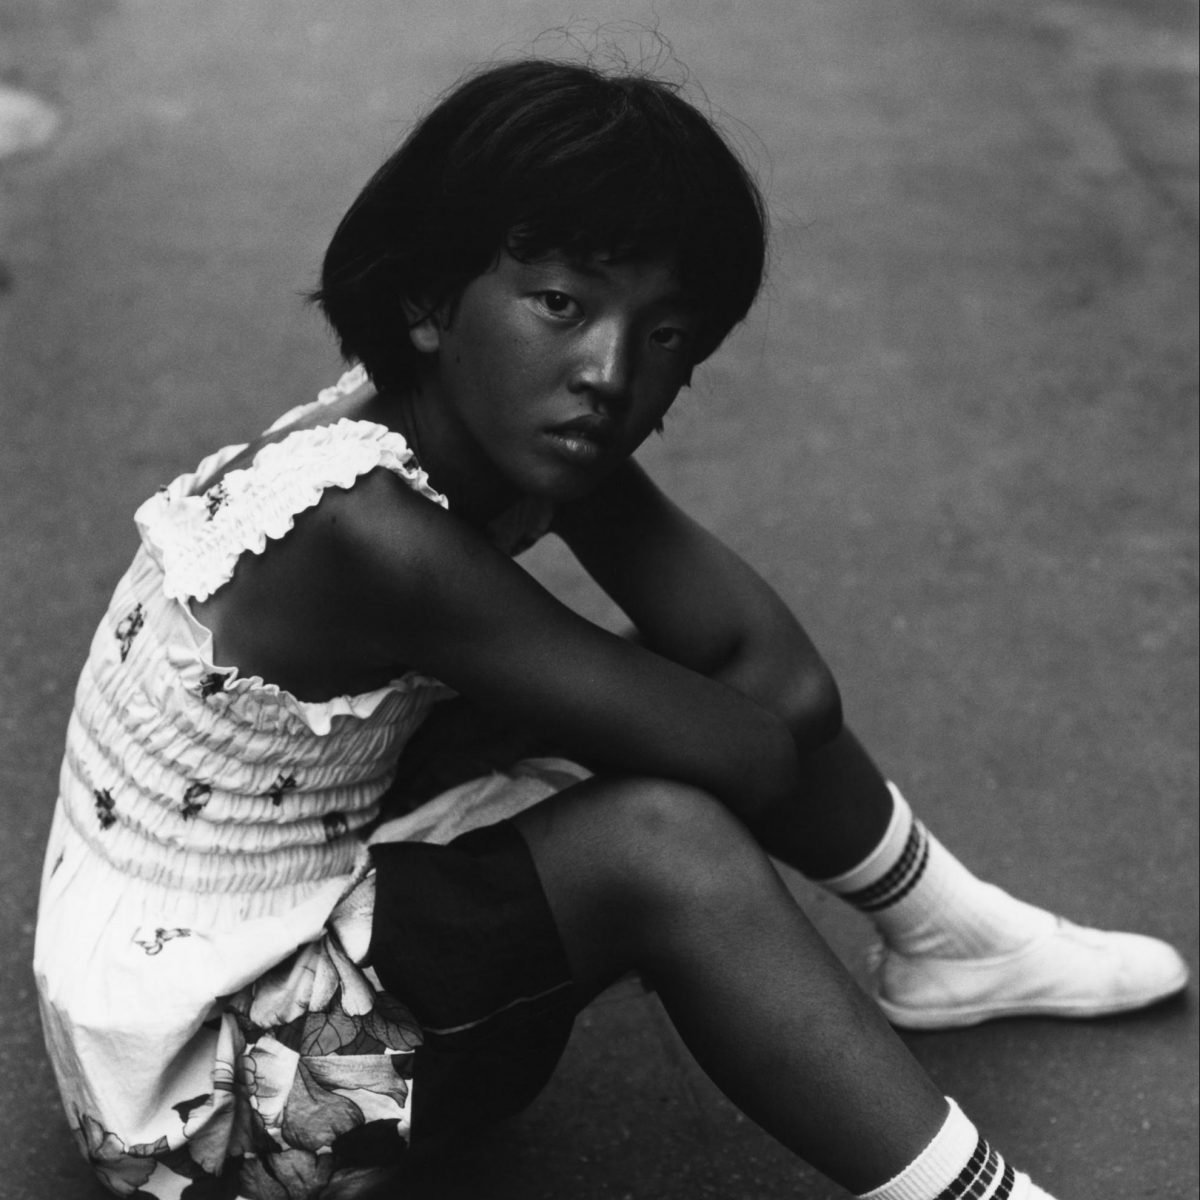 Black and white portrait of a young girl in japan by Issei Suda